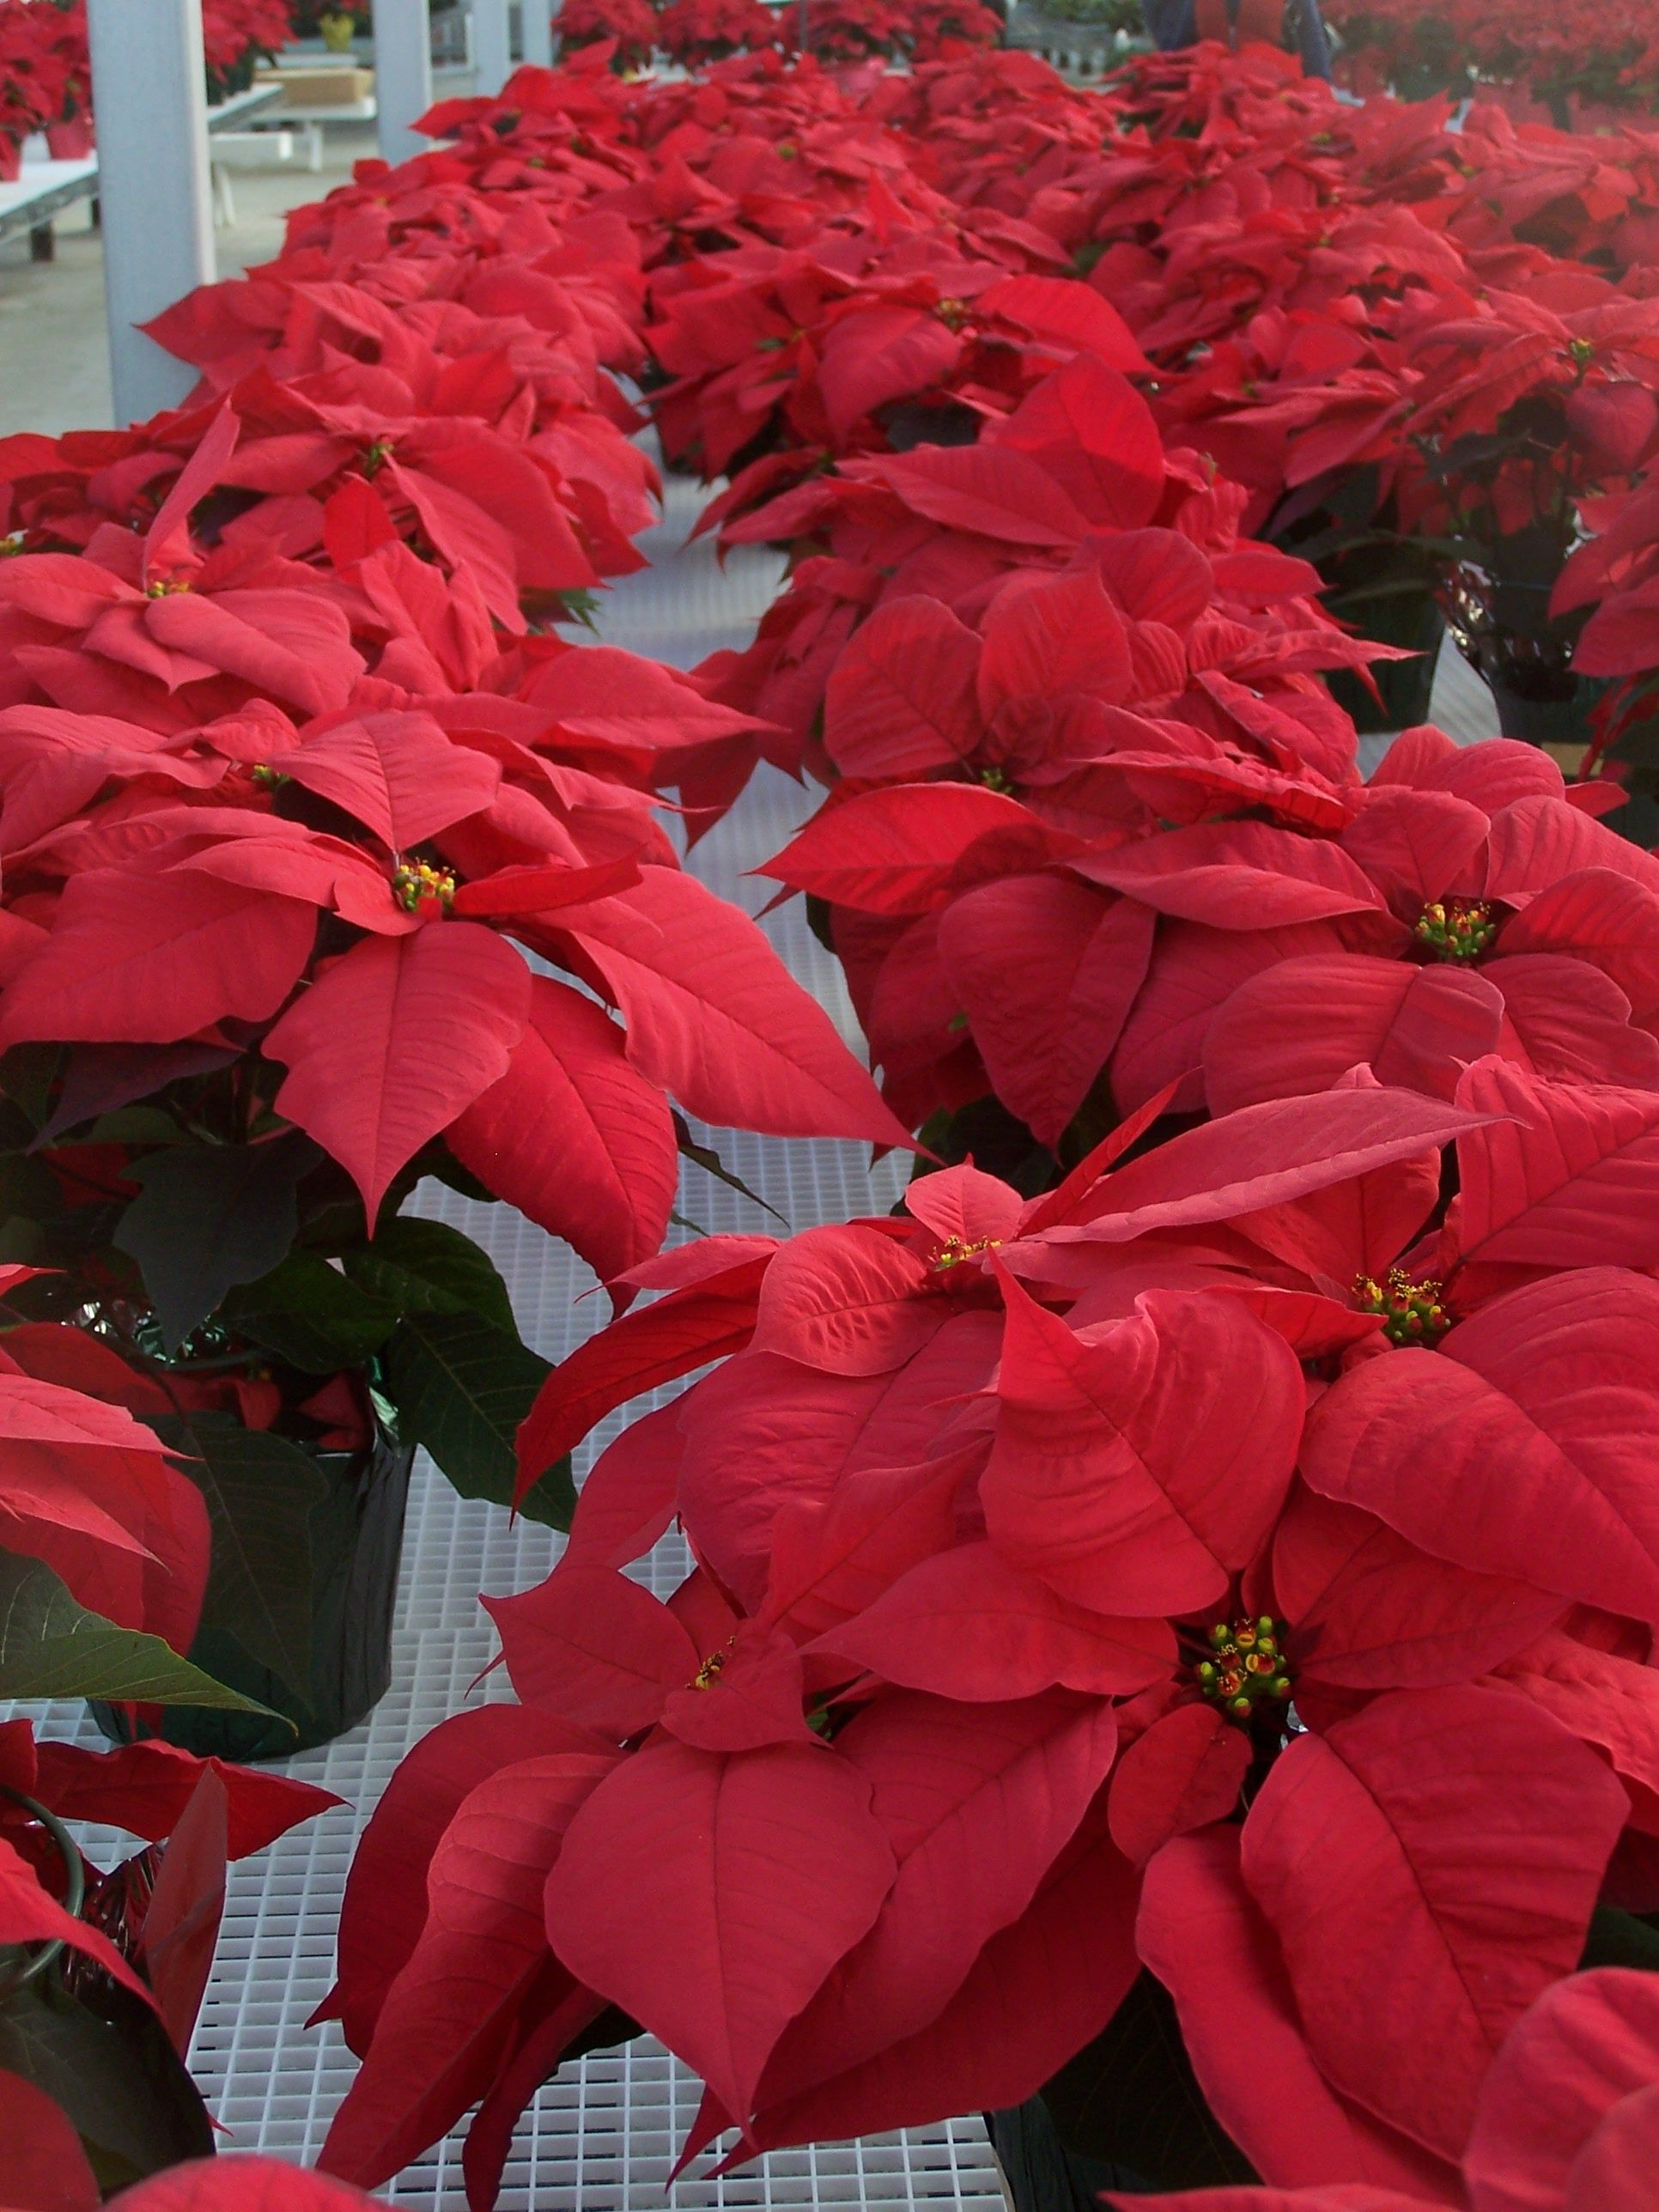 Viking Red\' colors. at Duarte Poinsettia Farms. | Older Adults Bus ...